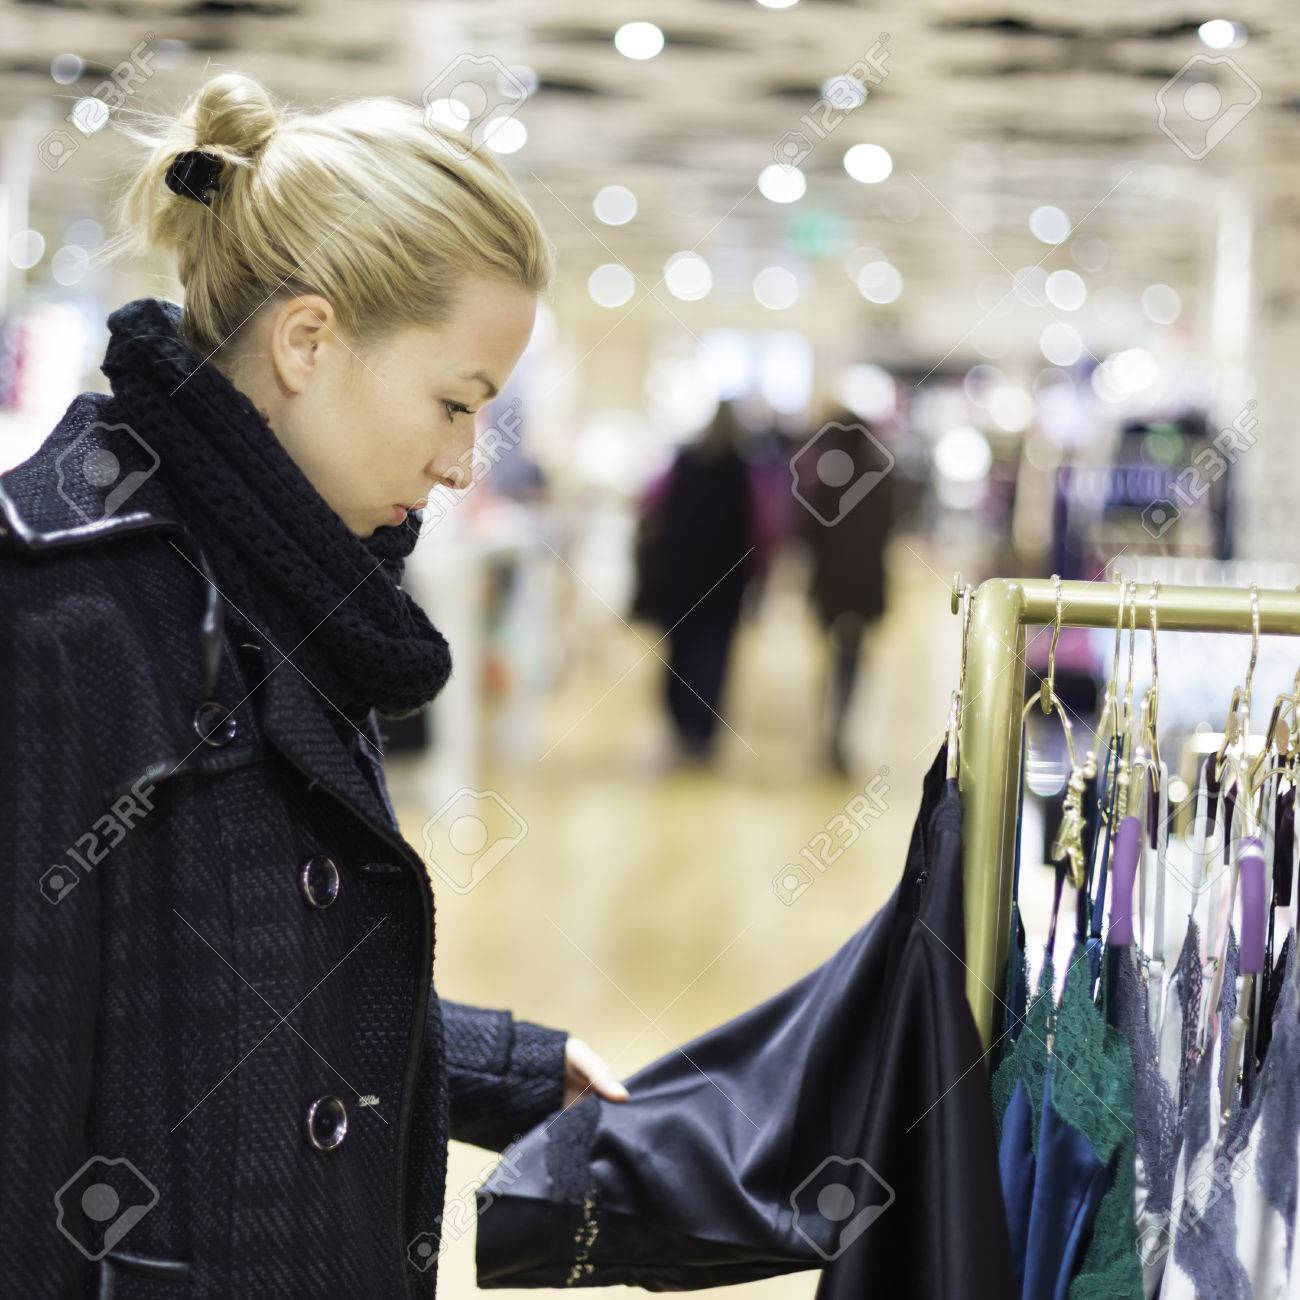 Woman Shopping Lingerie . Shopper Looking And Choosing Clothing ...